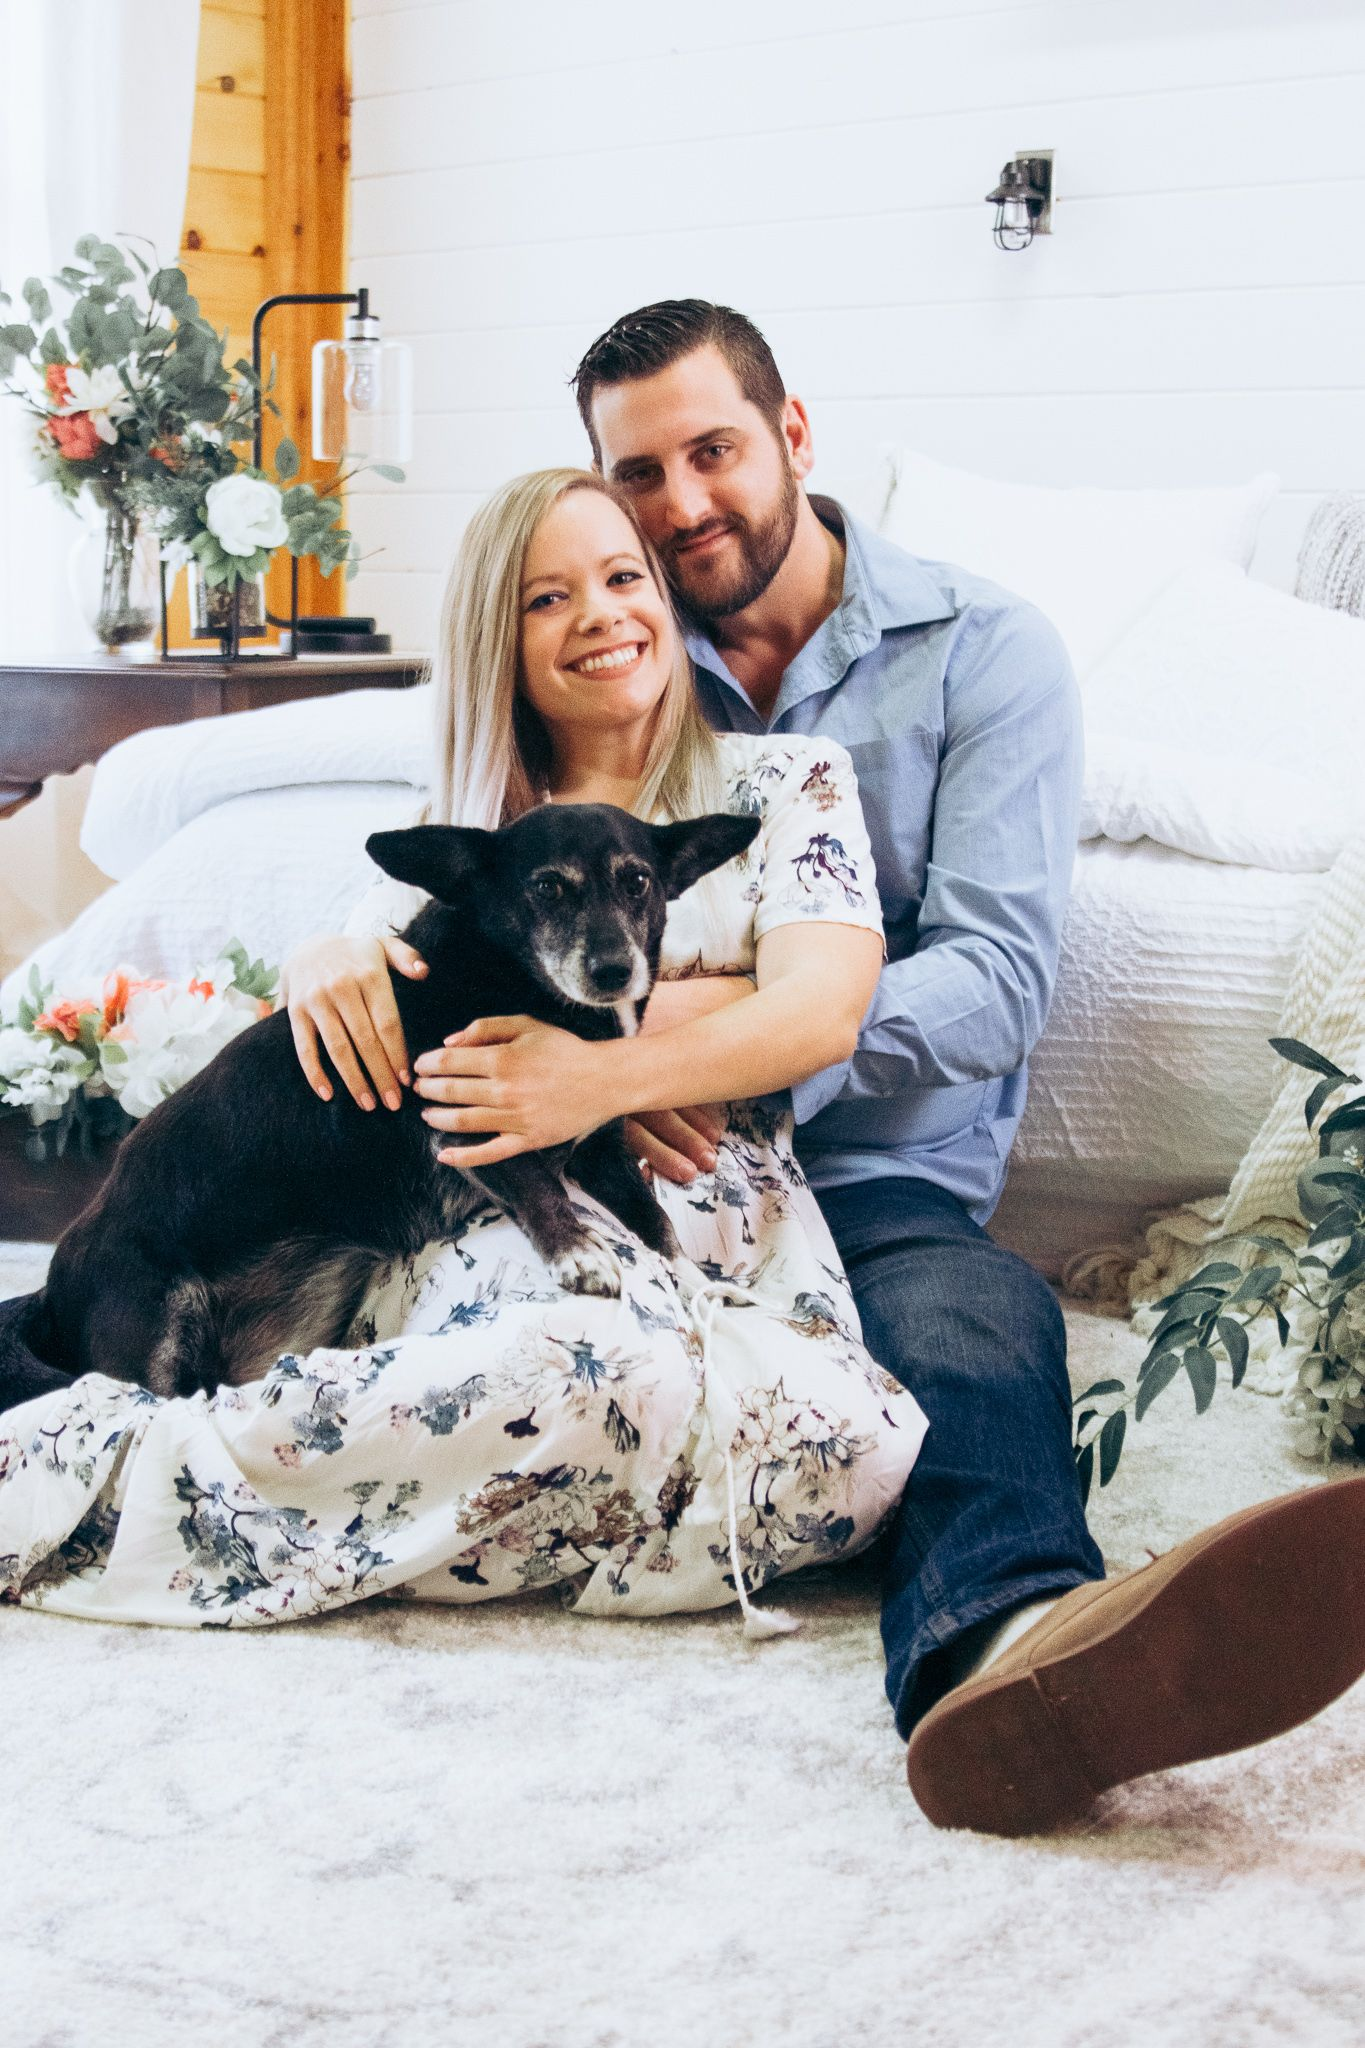 couple and dog sitting on carpeted floor smiling